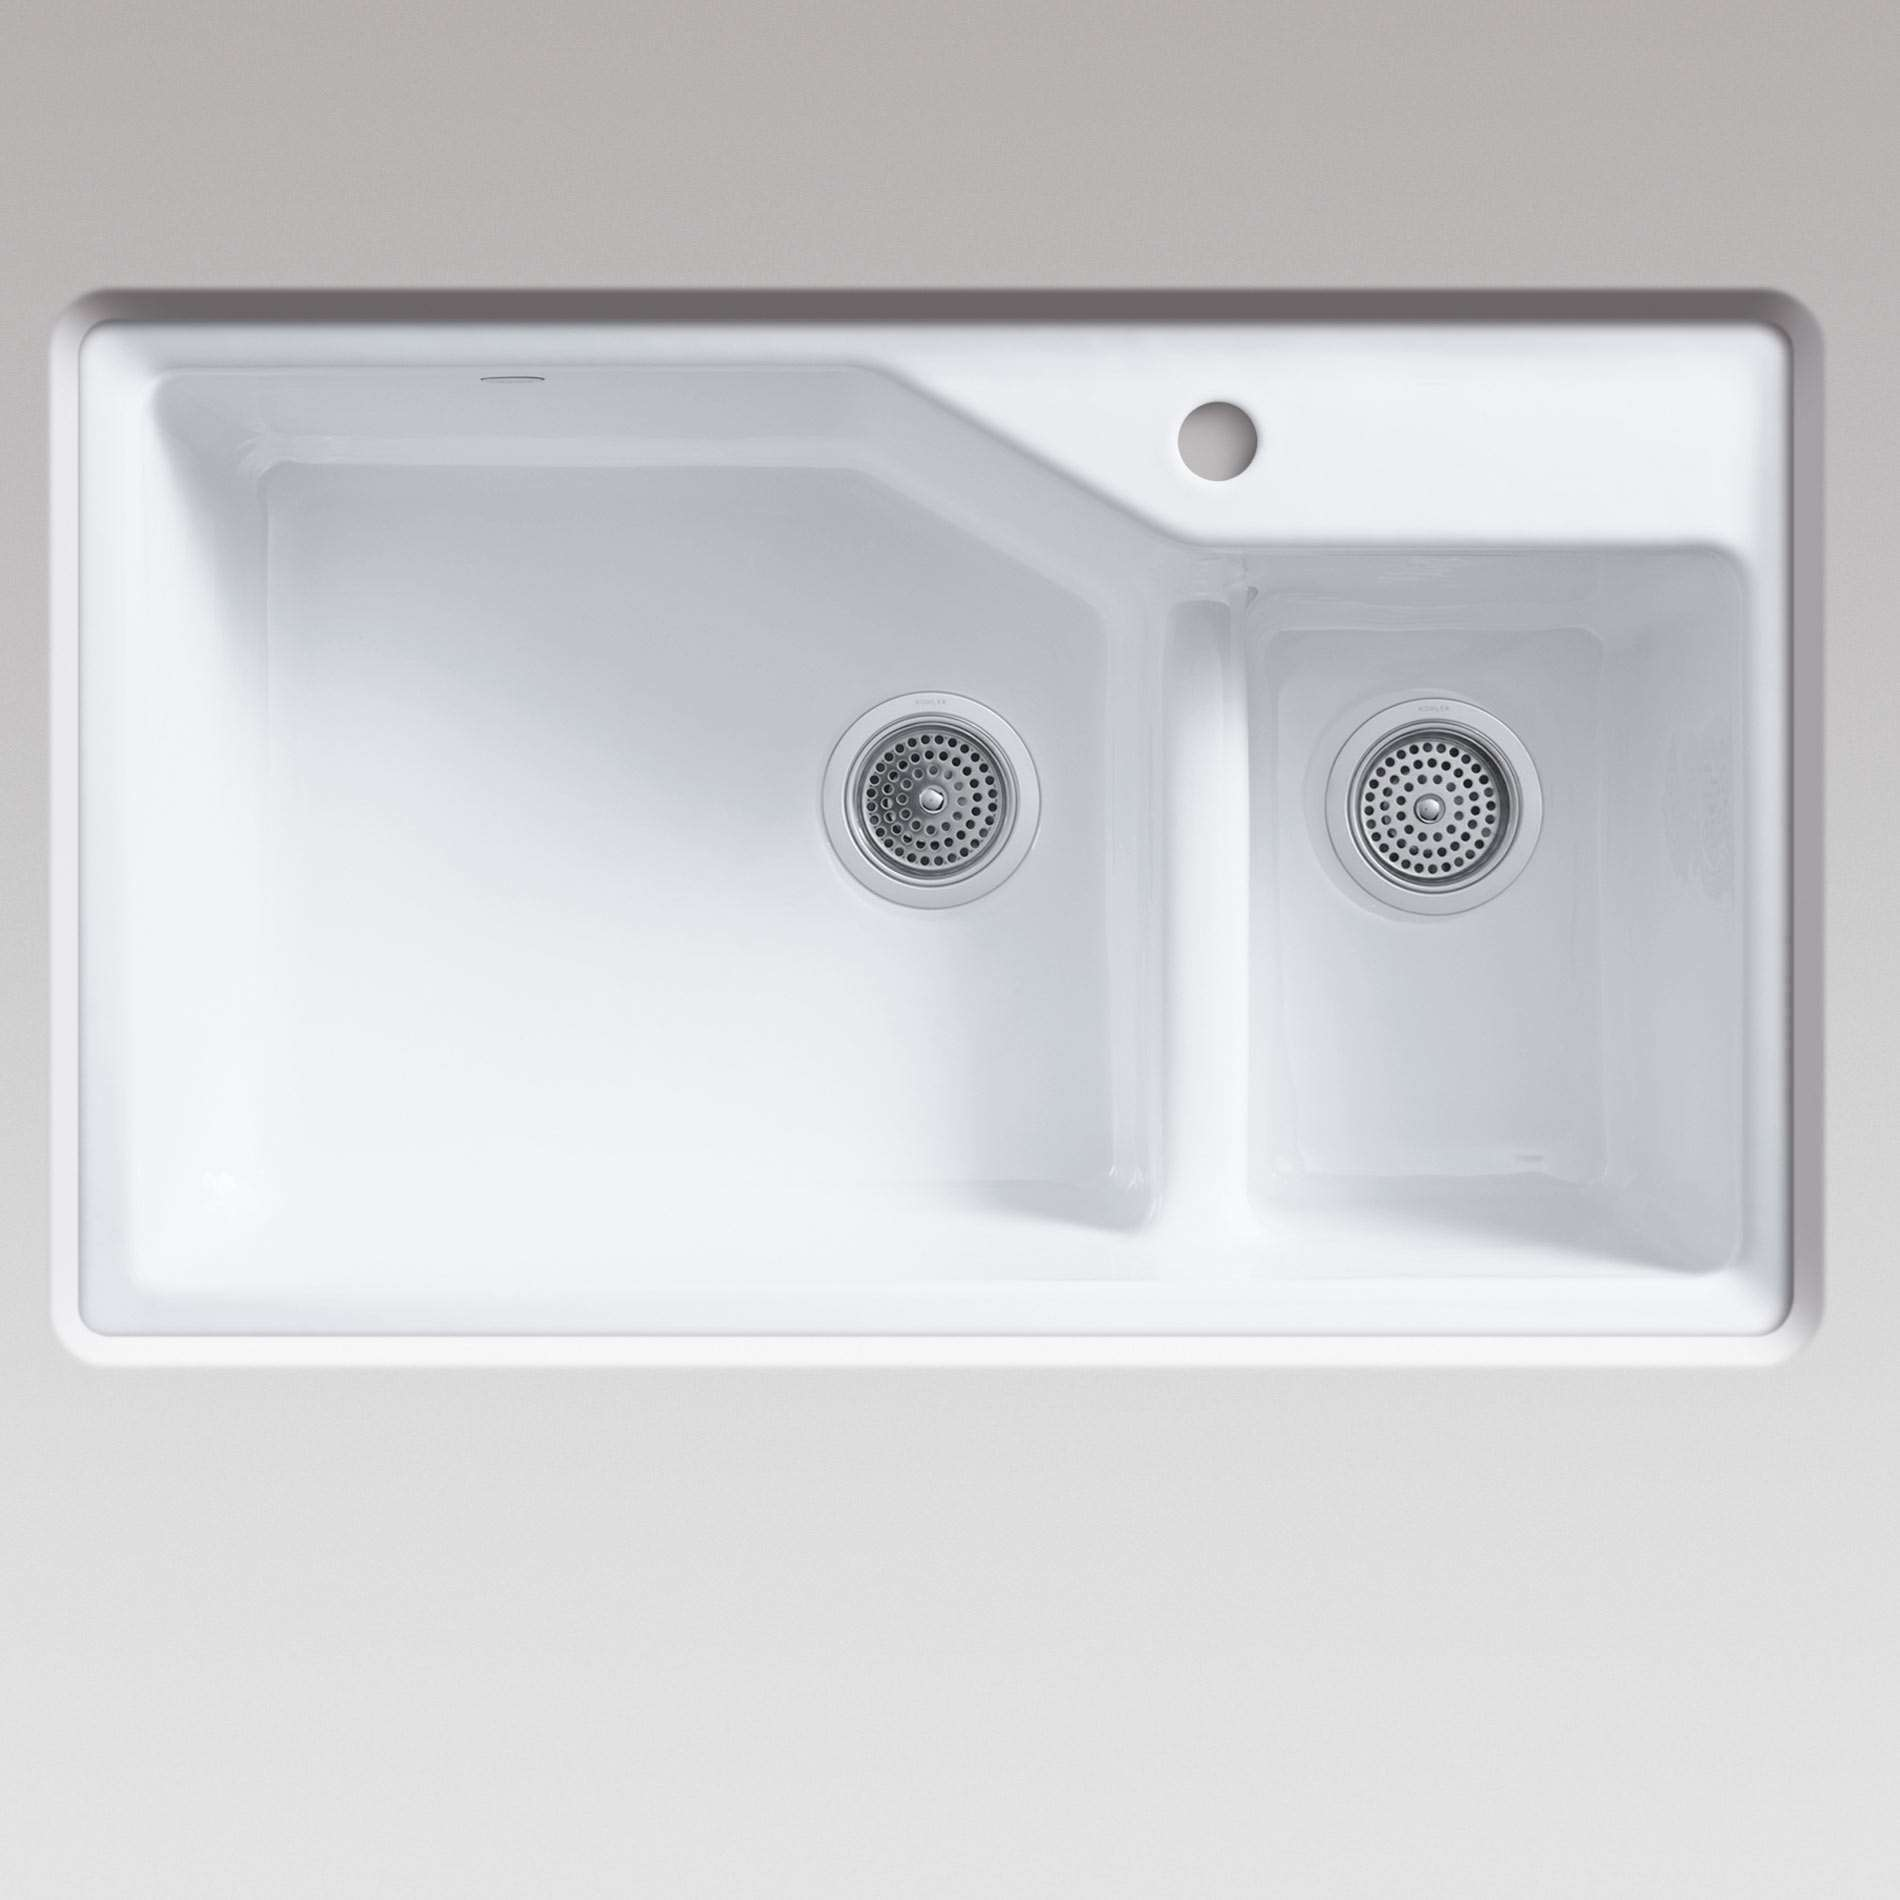 Kohler indio 6411 2 tap hole smart divide white cast iron for Cast iron sink manufacturers